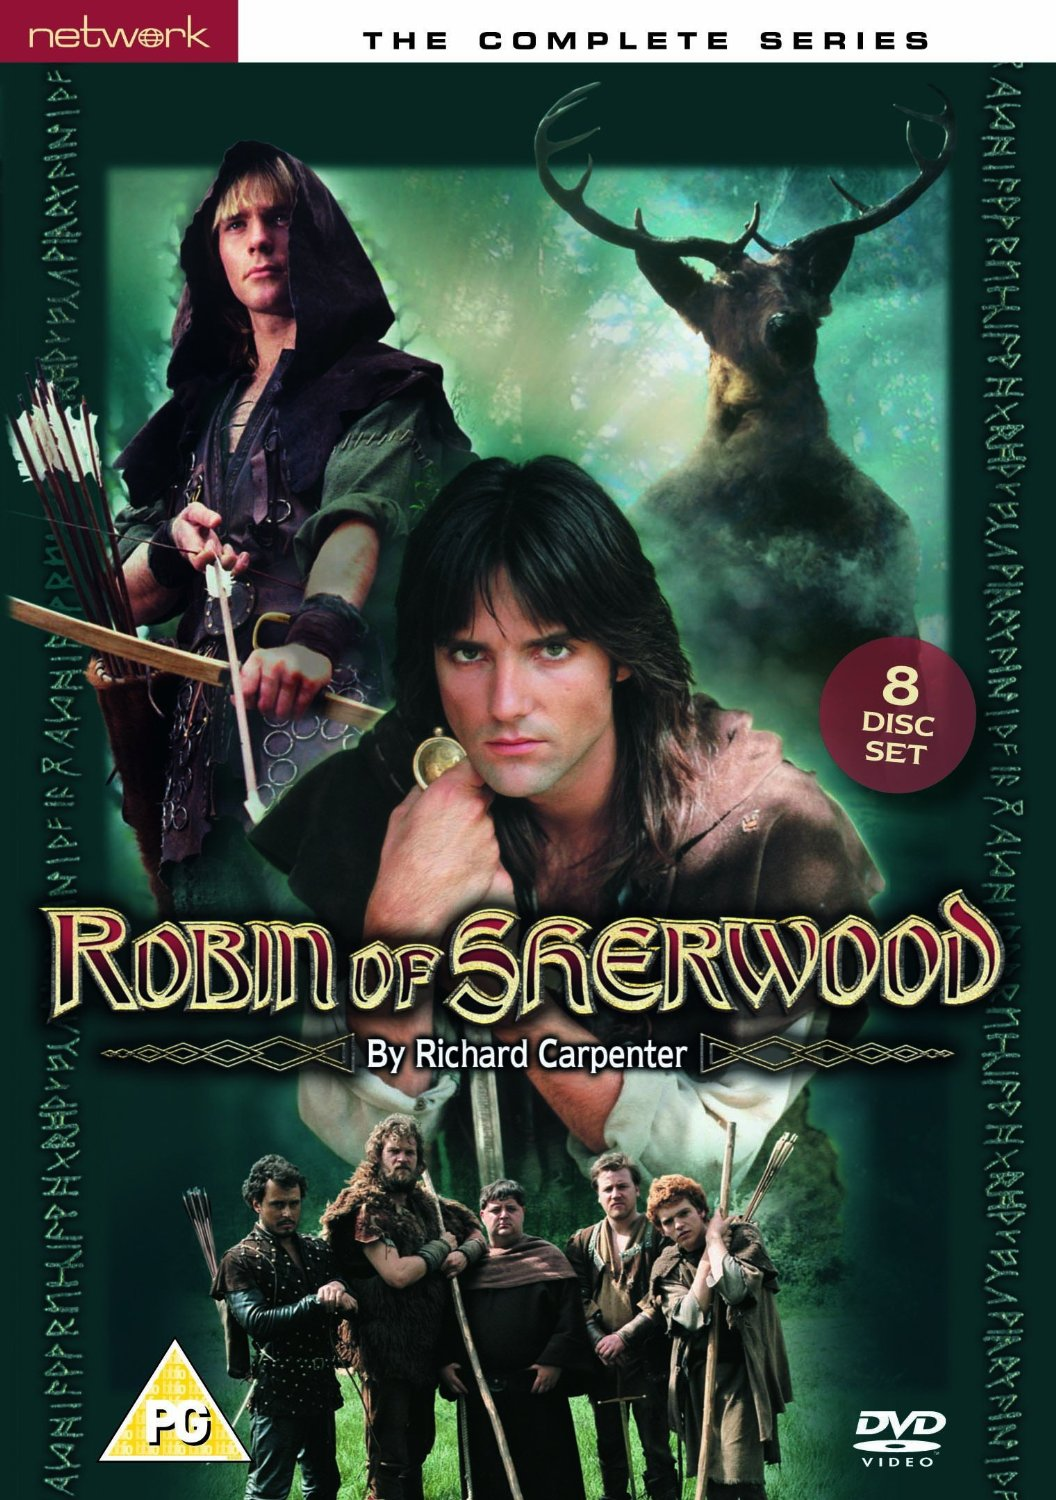 All Three Seasons Of The Original TV Series Are Available On DVD And Blu Ray From NETWORK Robin Sherwood